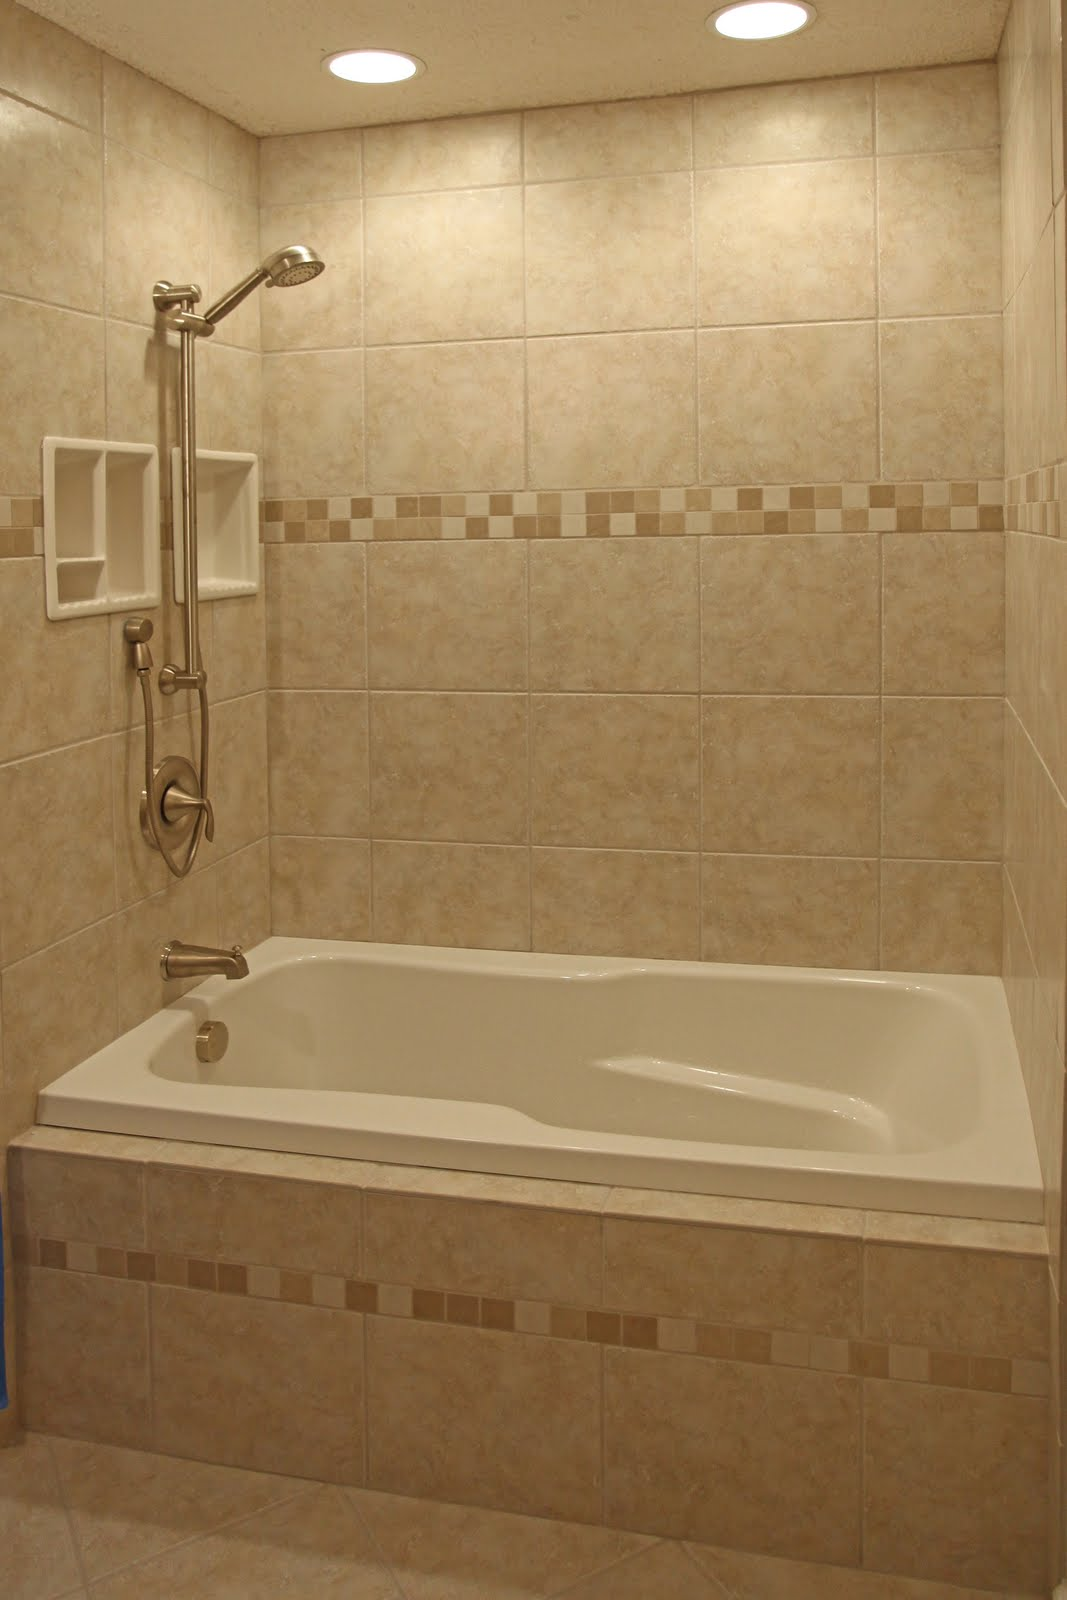 Bathroom wall tile designs Photo - 1